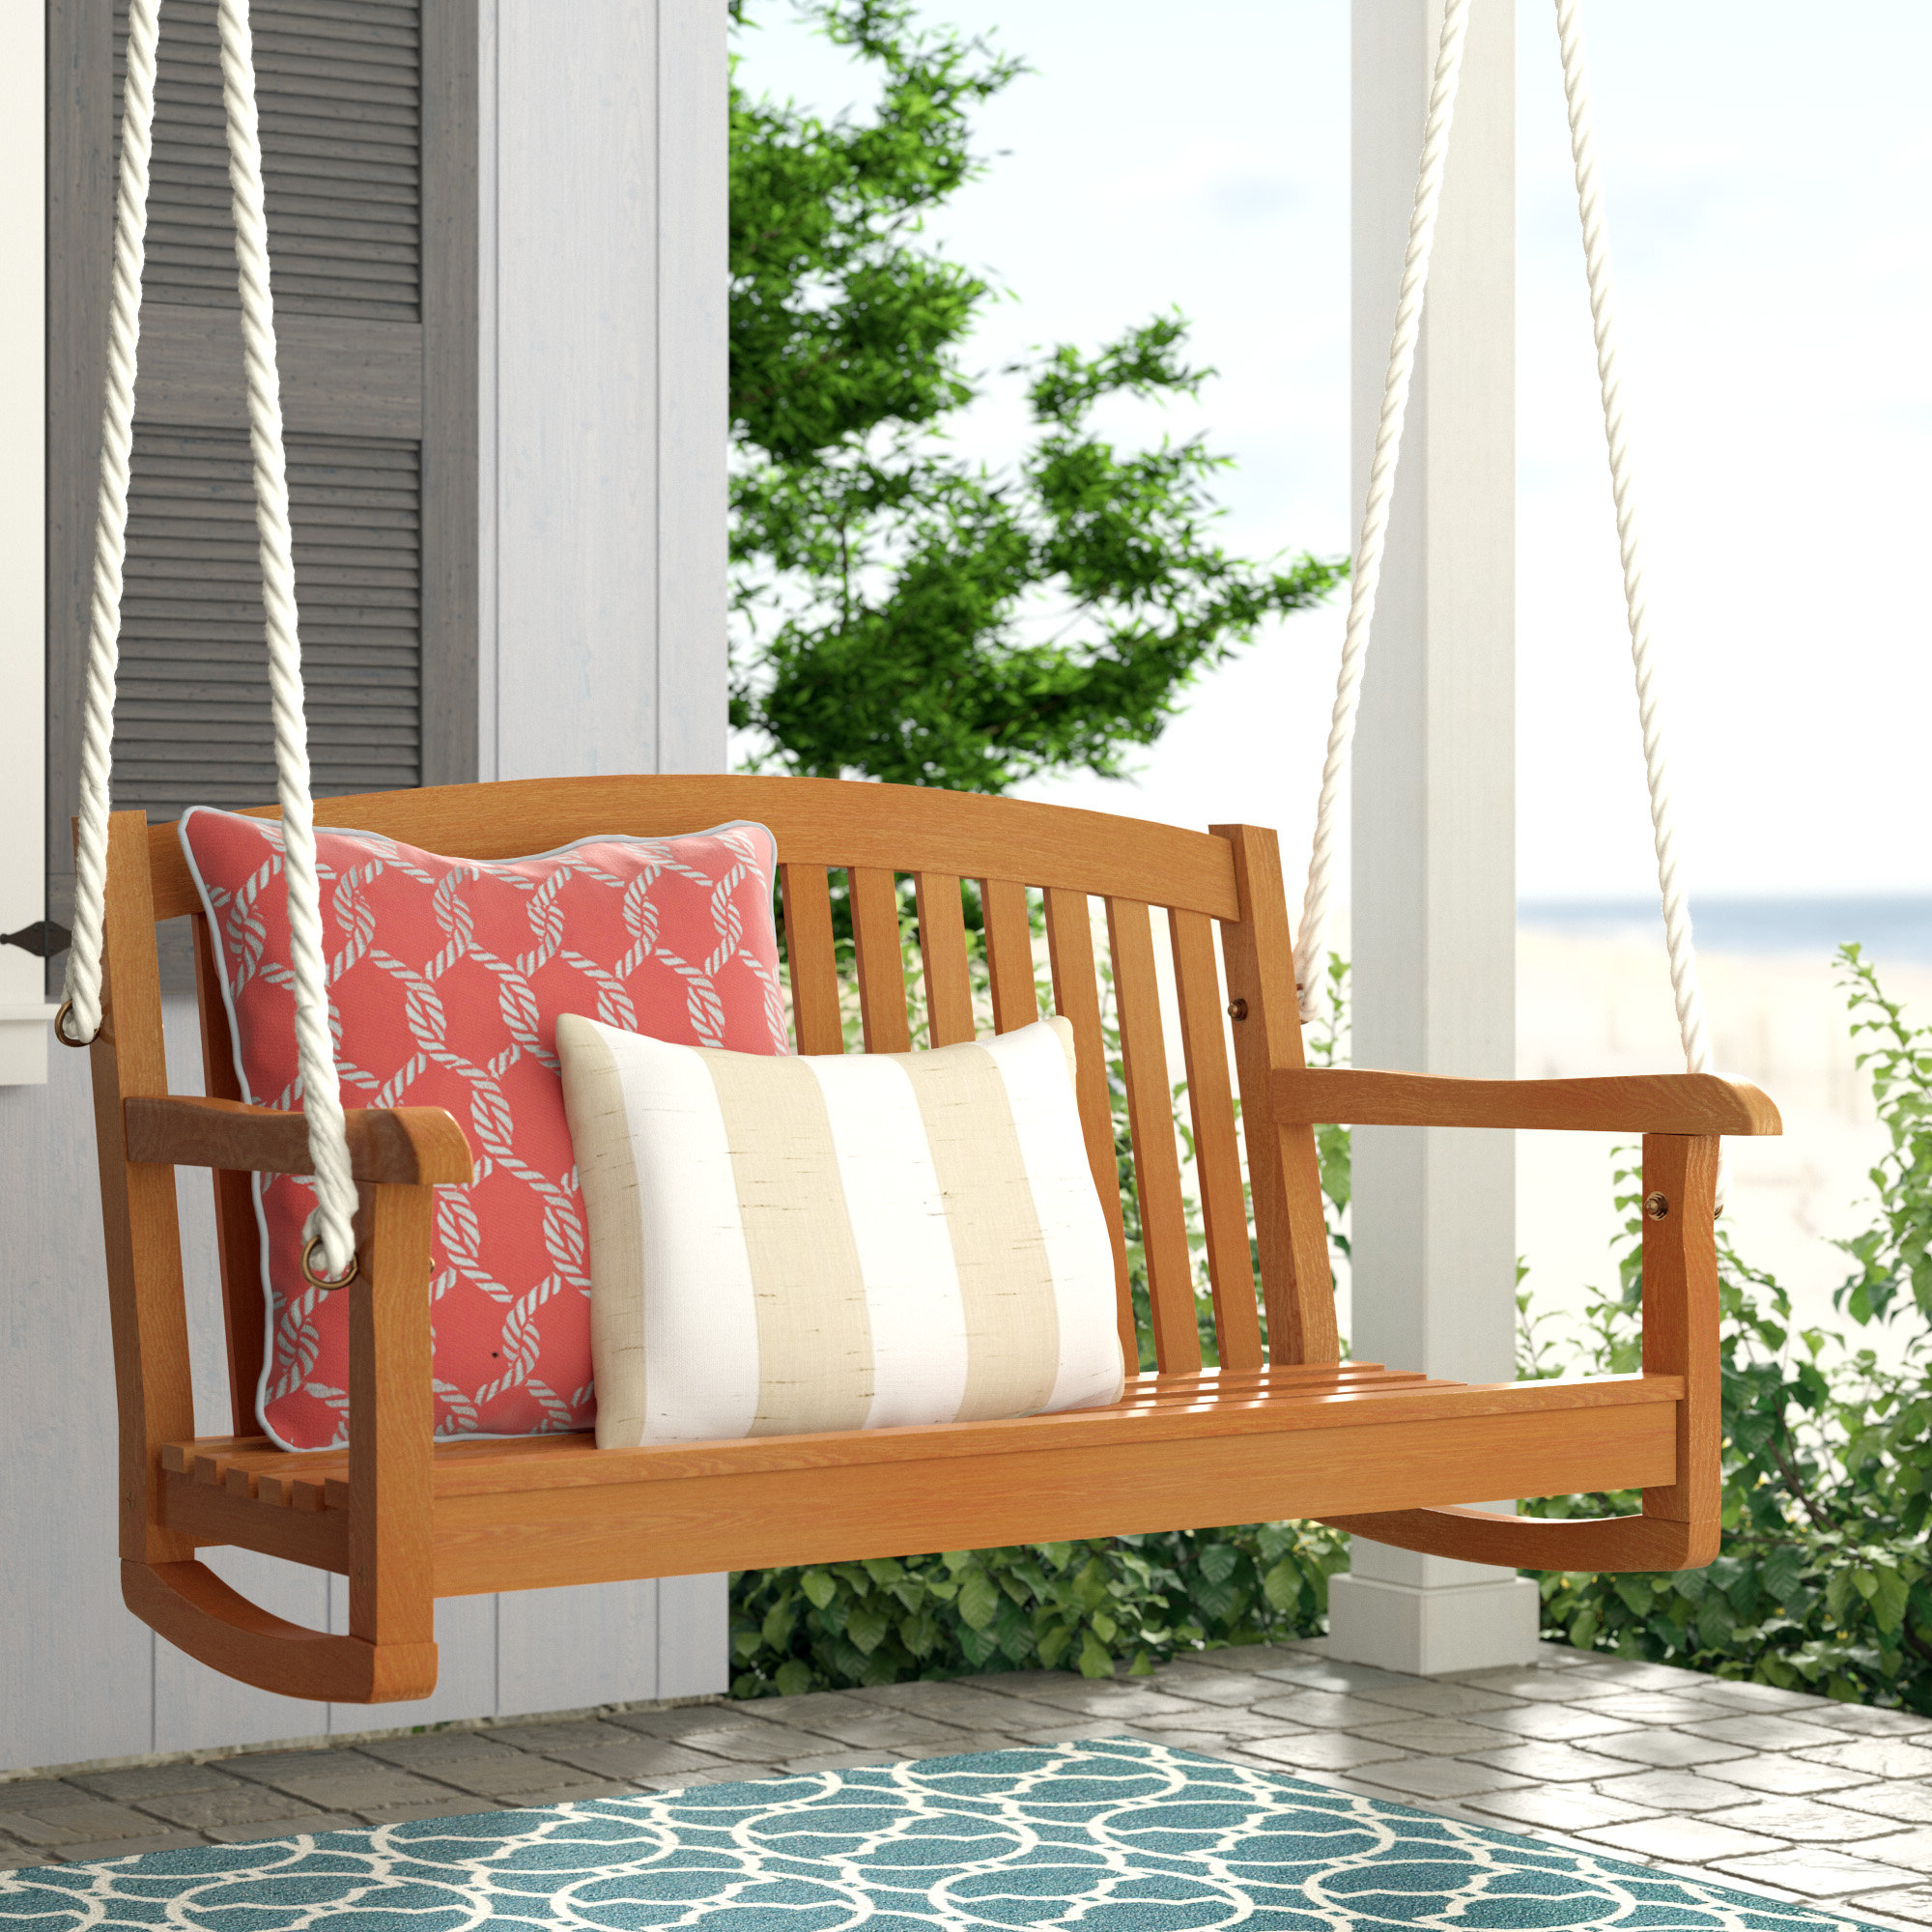 Beachcrest Home Portland Teak Porch Swing With Popular Teak Porch Swings (View 25 of 30)